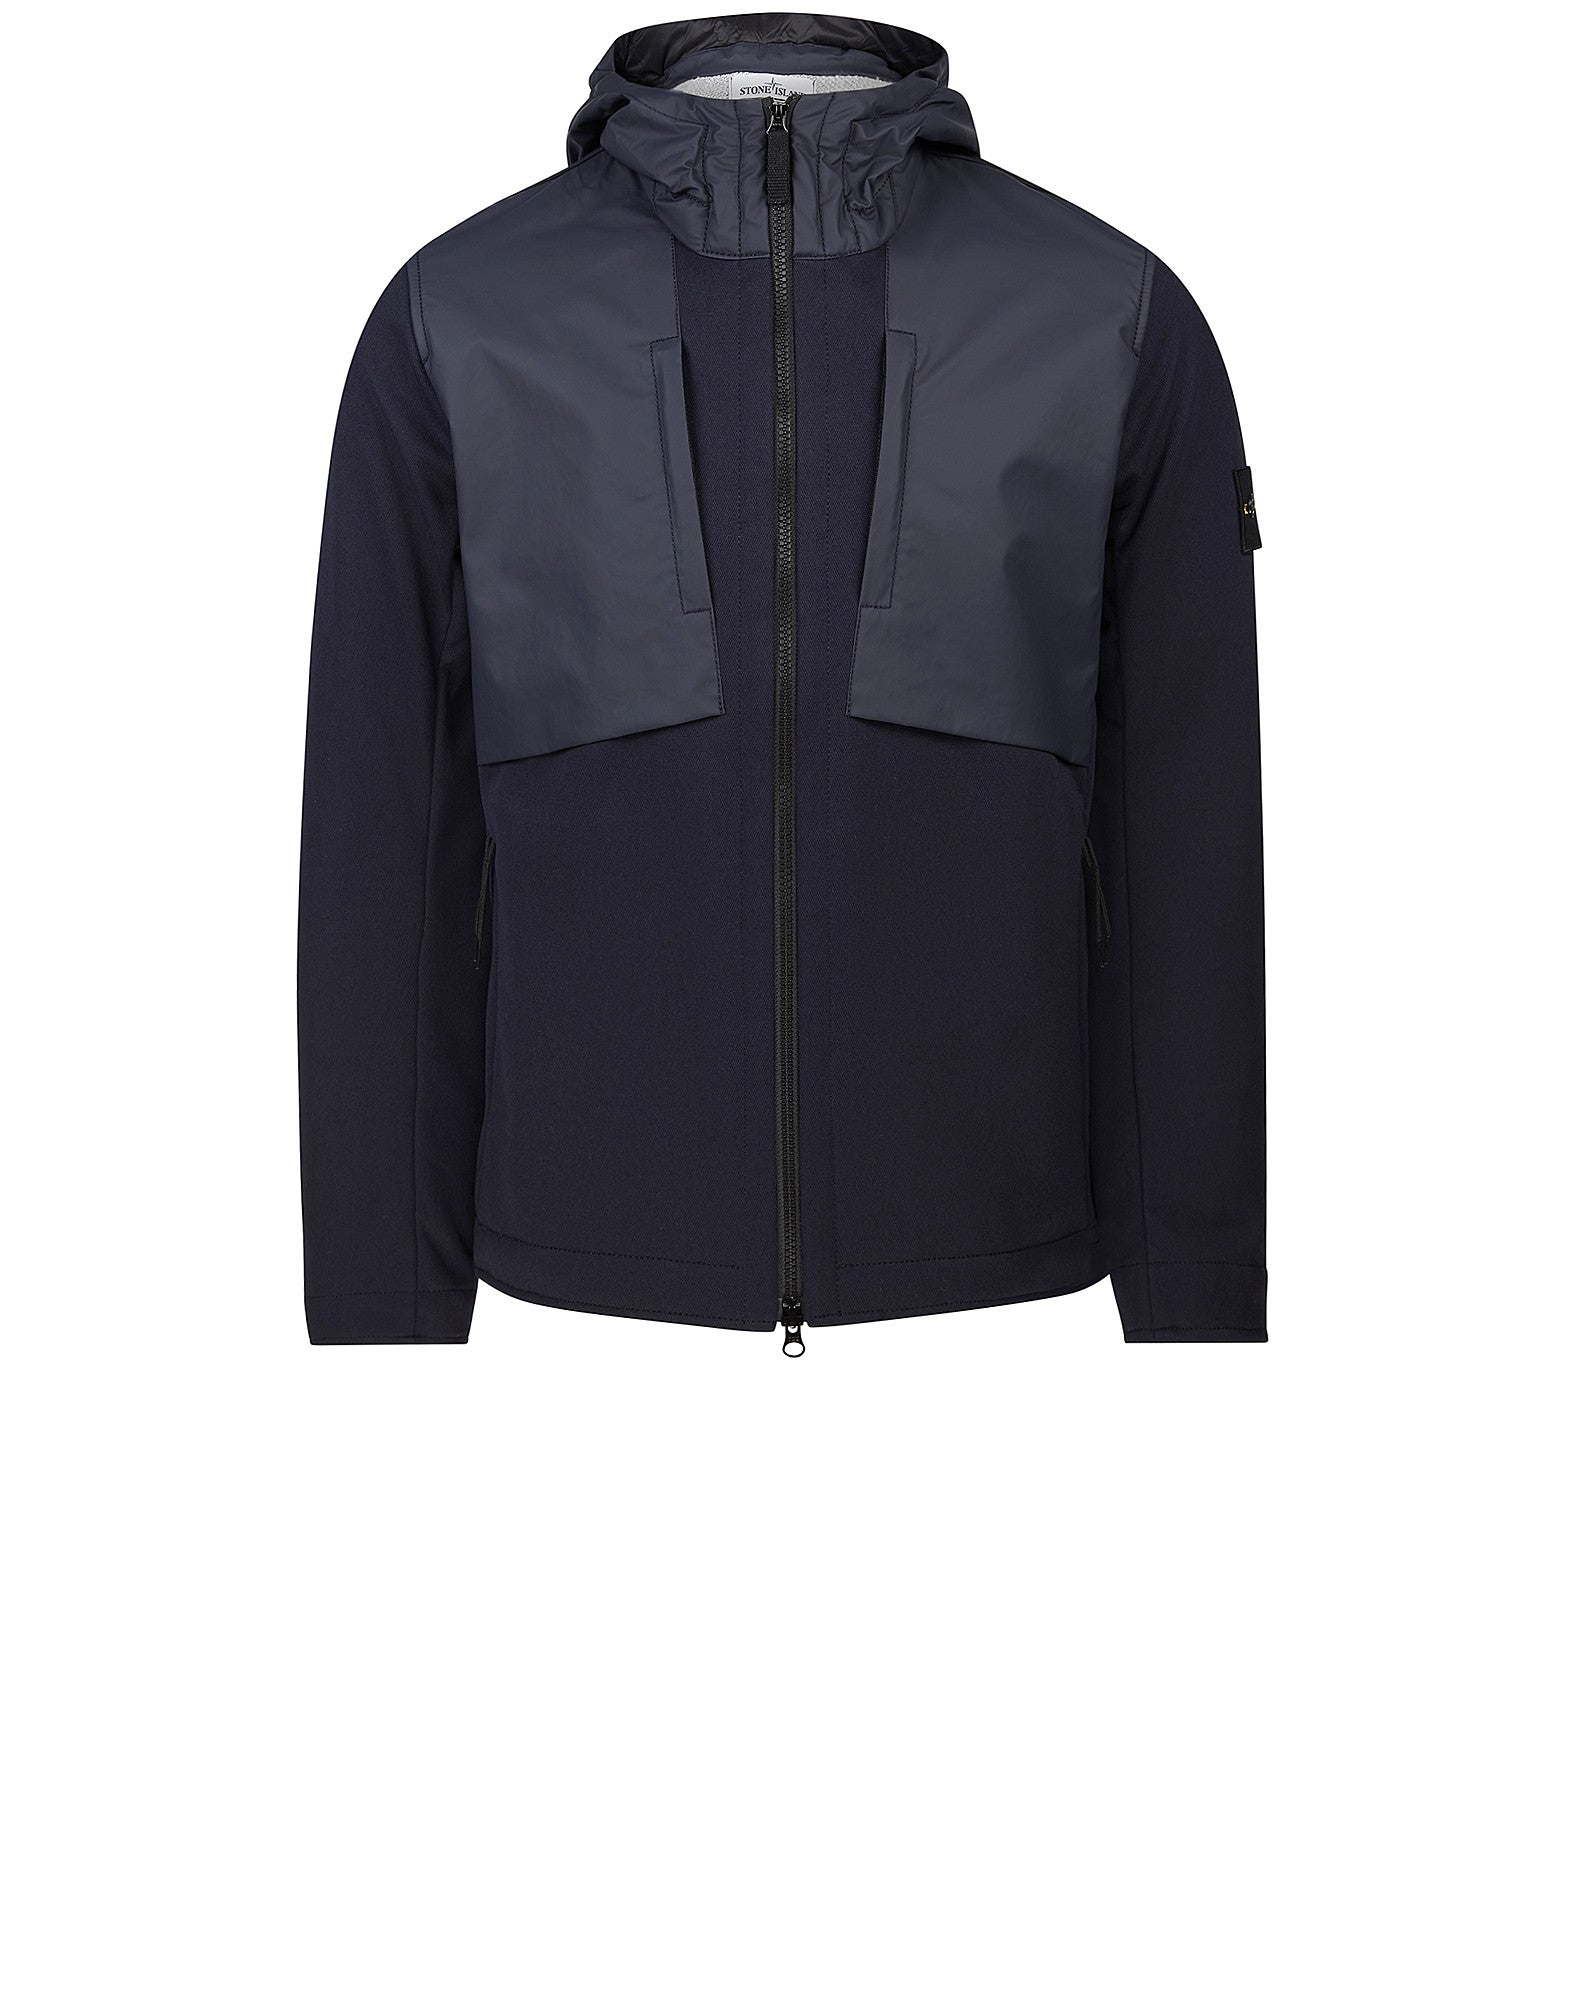 Q0128 SOFT SHELL-R TERRY Jacket in Navy